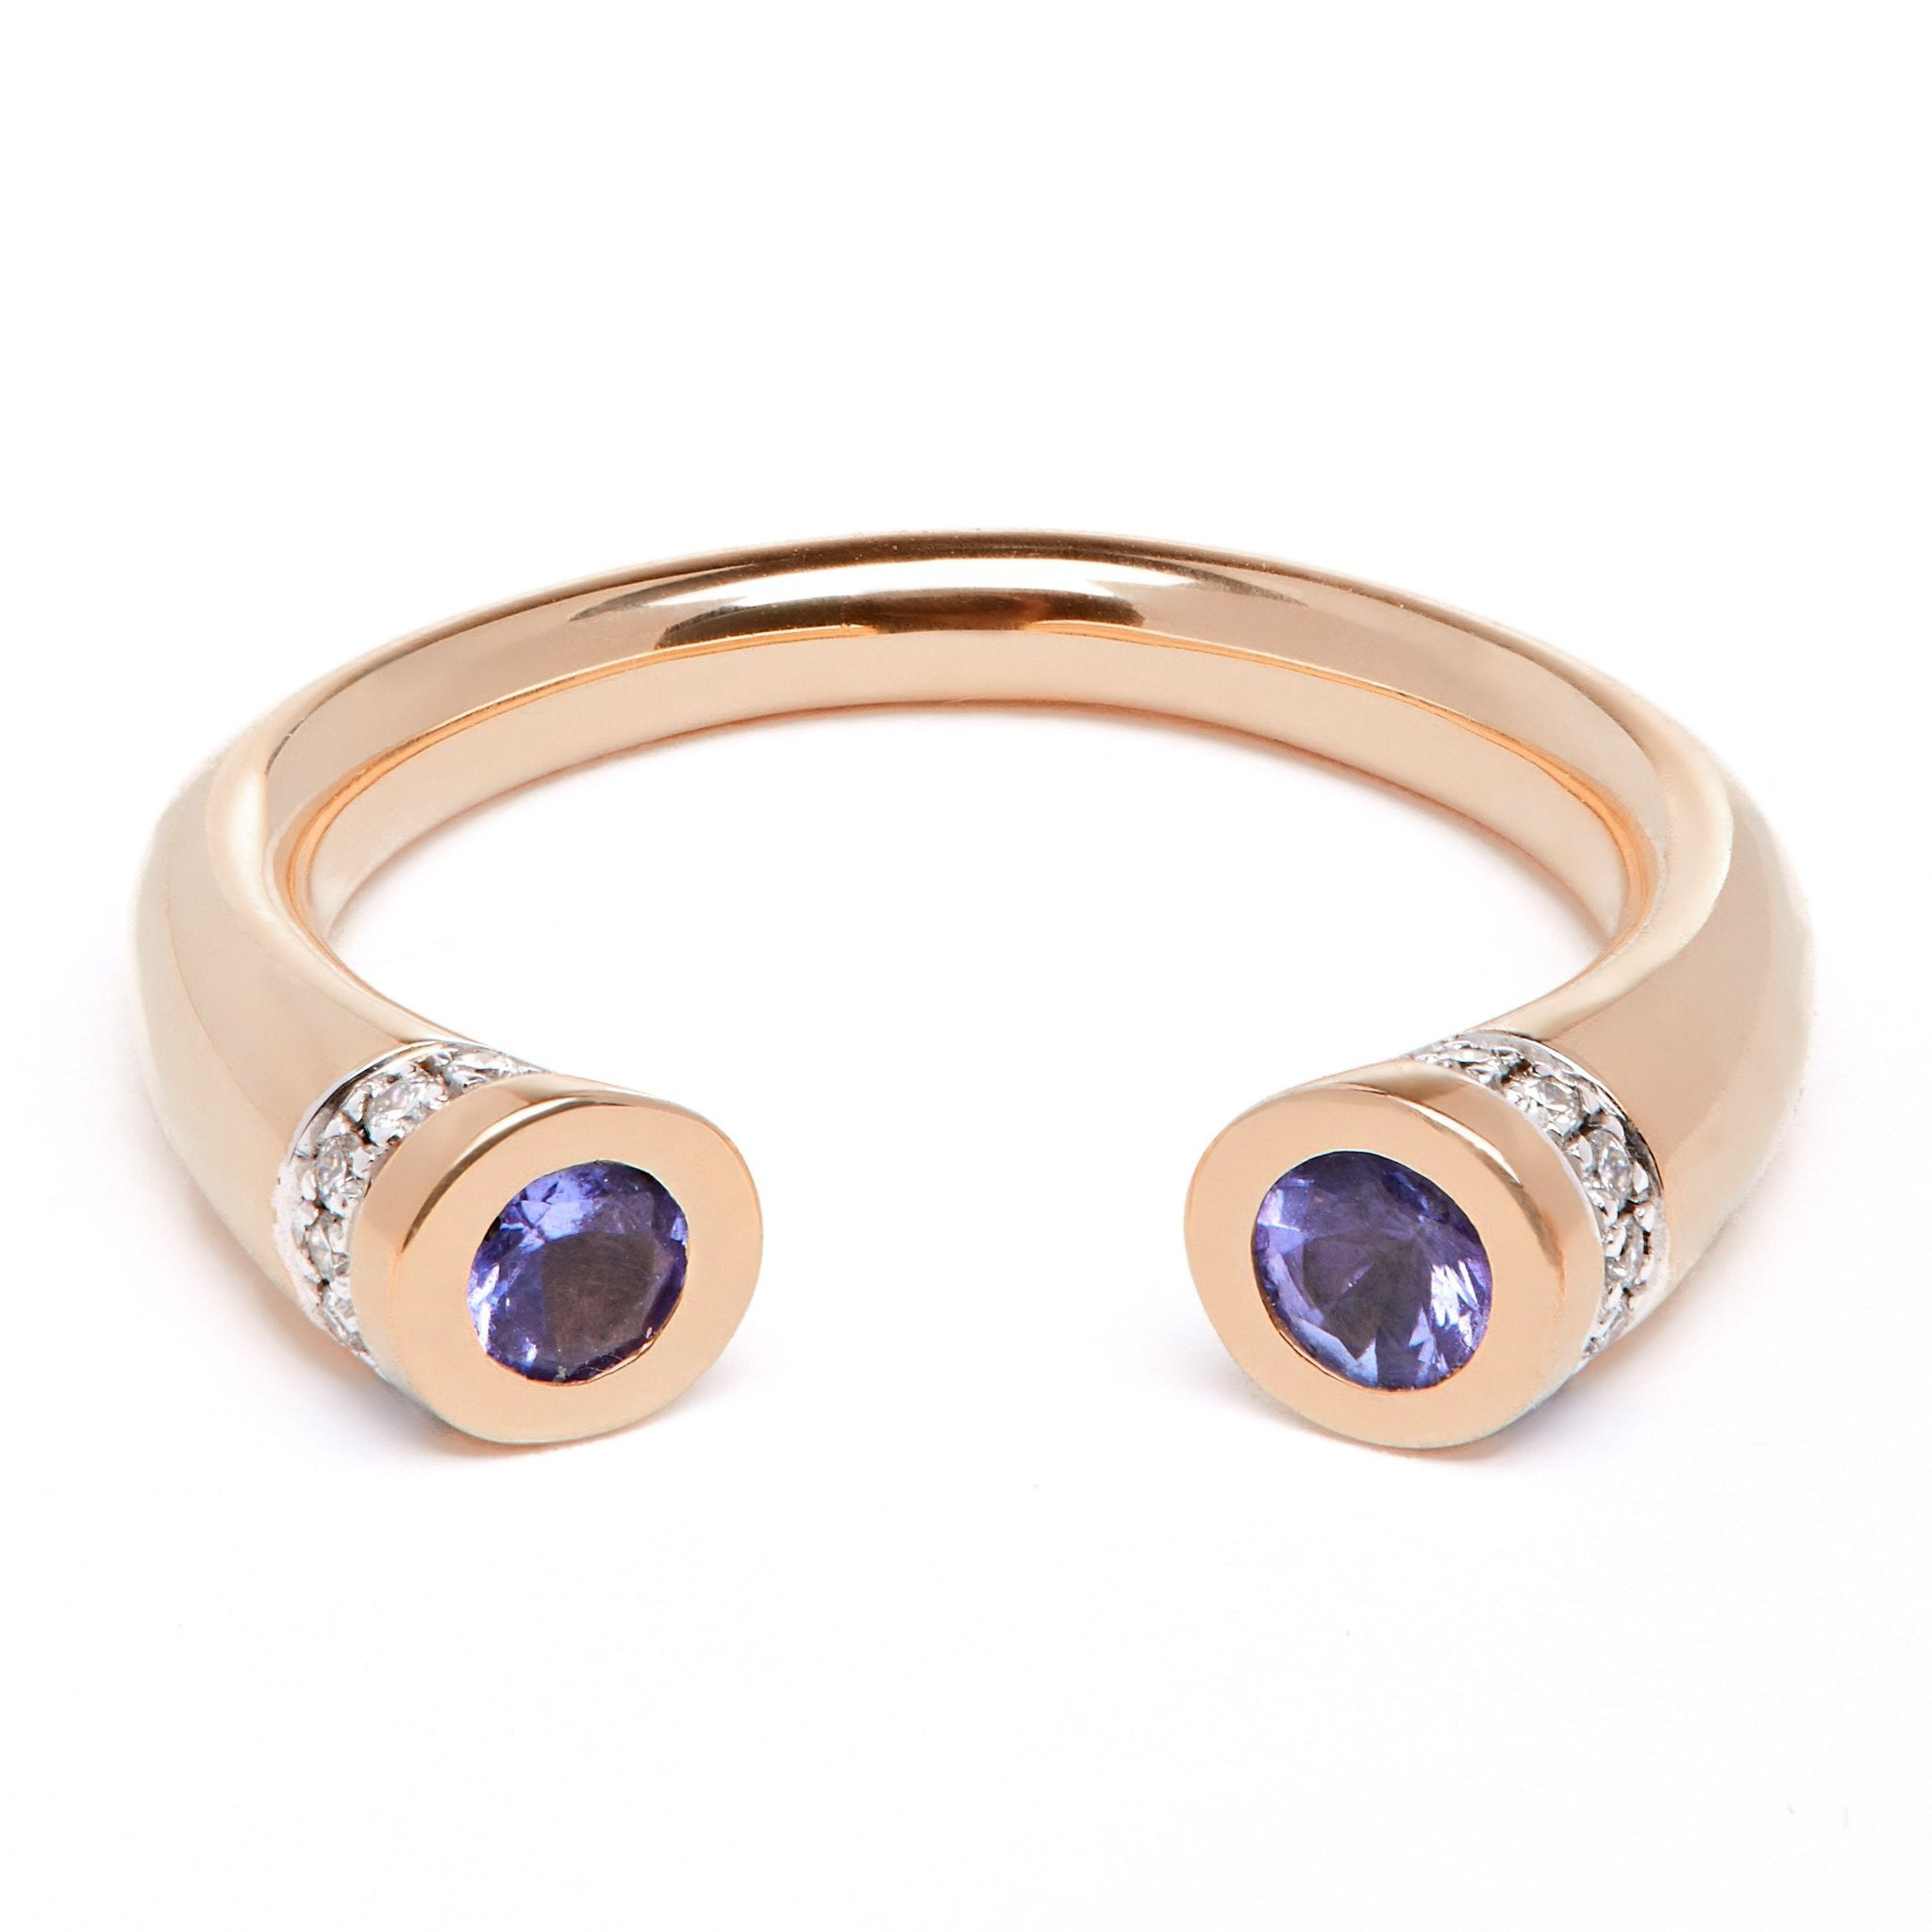 Chete Ring - Rose Gold, Tanzanite and Diamond